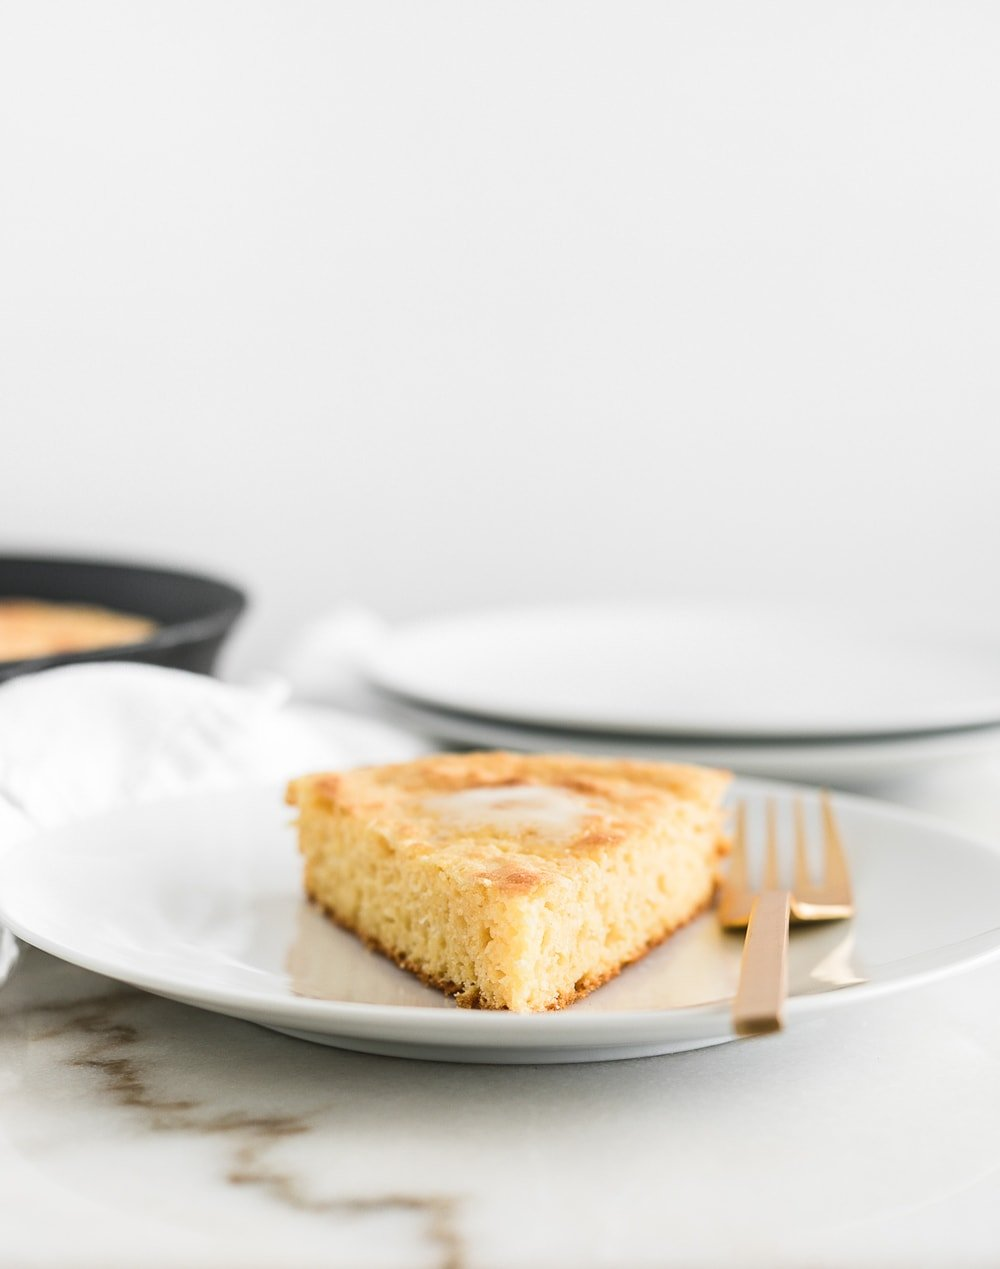 This lightened up skillet cornbread is a must-have recipe for cold weather. It goes great with soups, beans, or in your Thanksgiving stuffing, and it's so simple to make! (vegetarian)